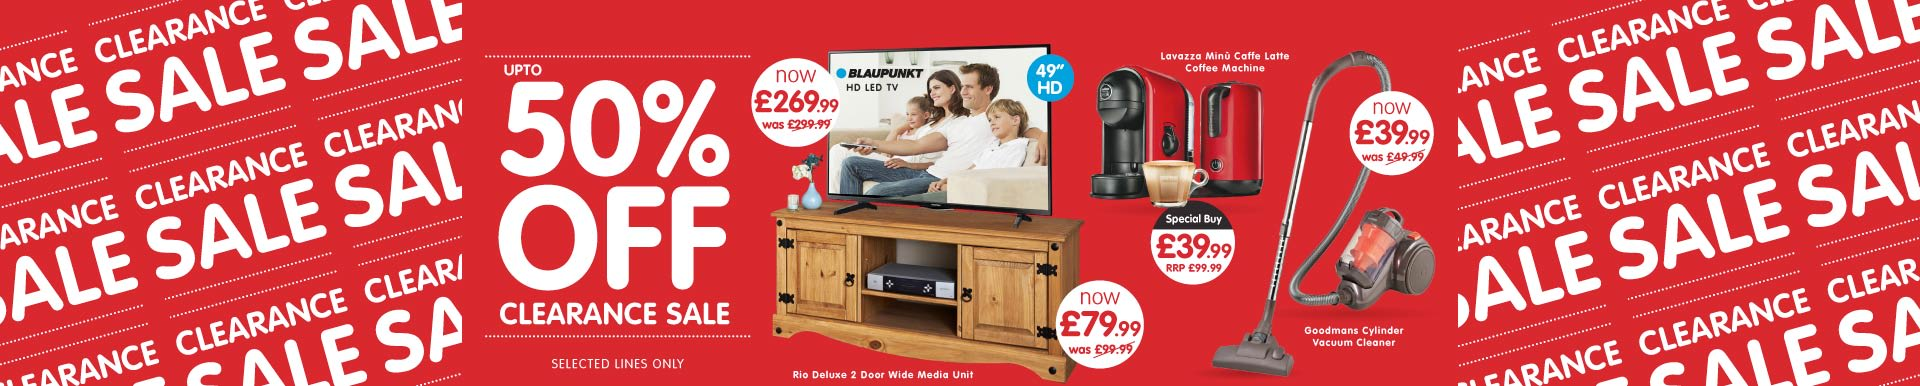 Clearance Sale now on at B&M.